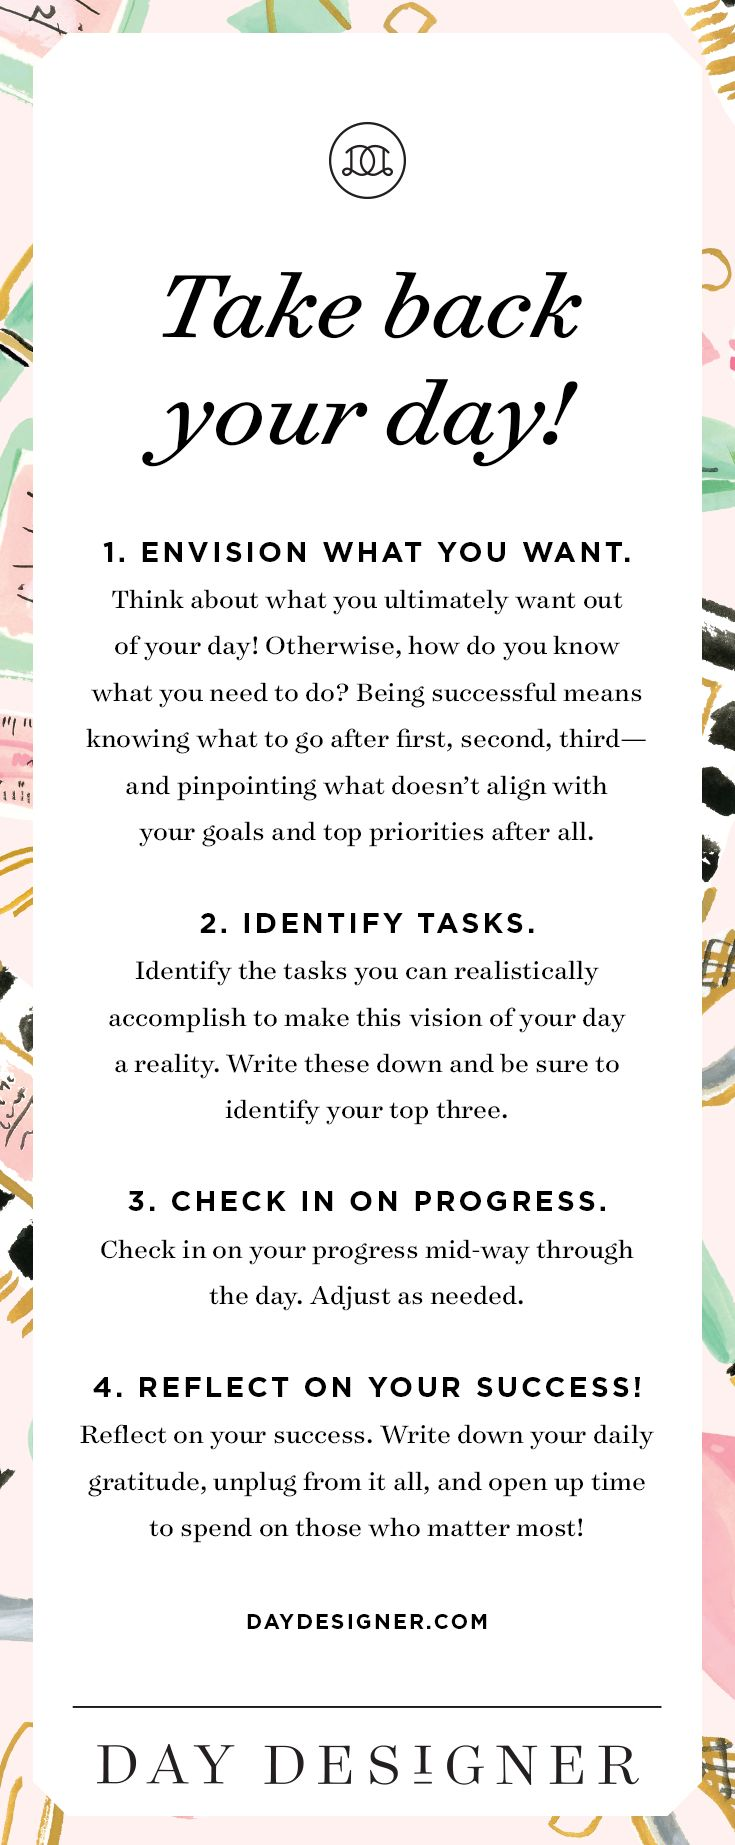 Take back your day! Envision what you want. Identify the tasks you can realistically accomplish. Check in on your progress mid-way through the day. Reflect on your success and open up time to spend on those who matter most! - Day Designer | The strategic planner and daily agenda for living a well-designed life.